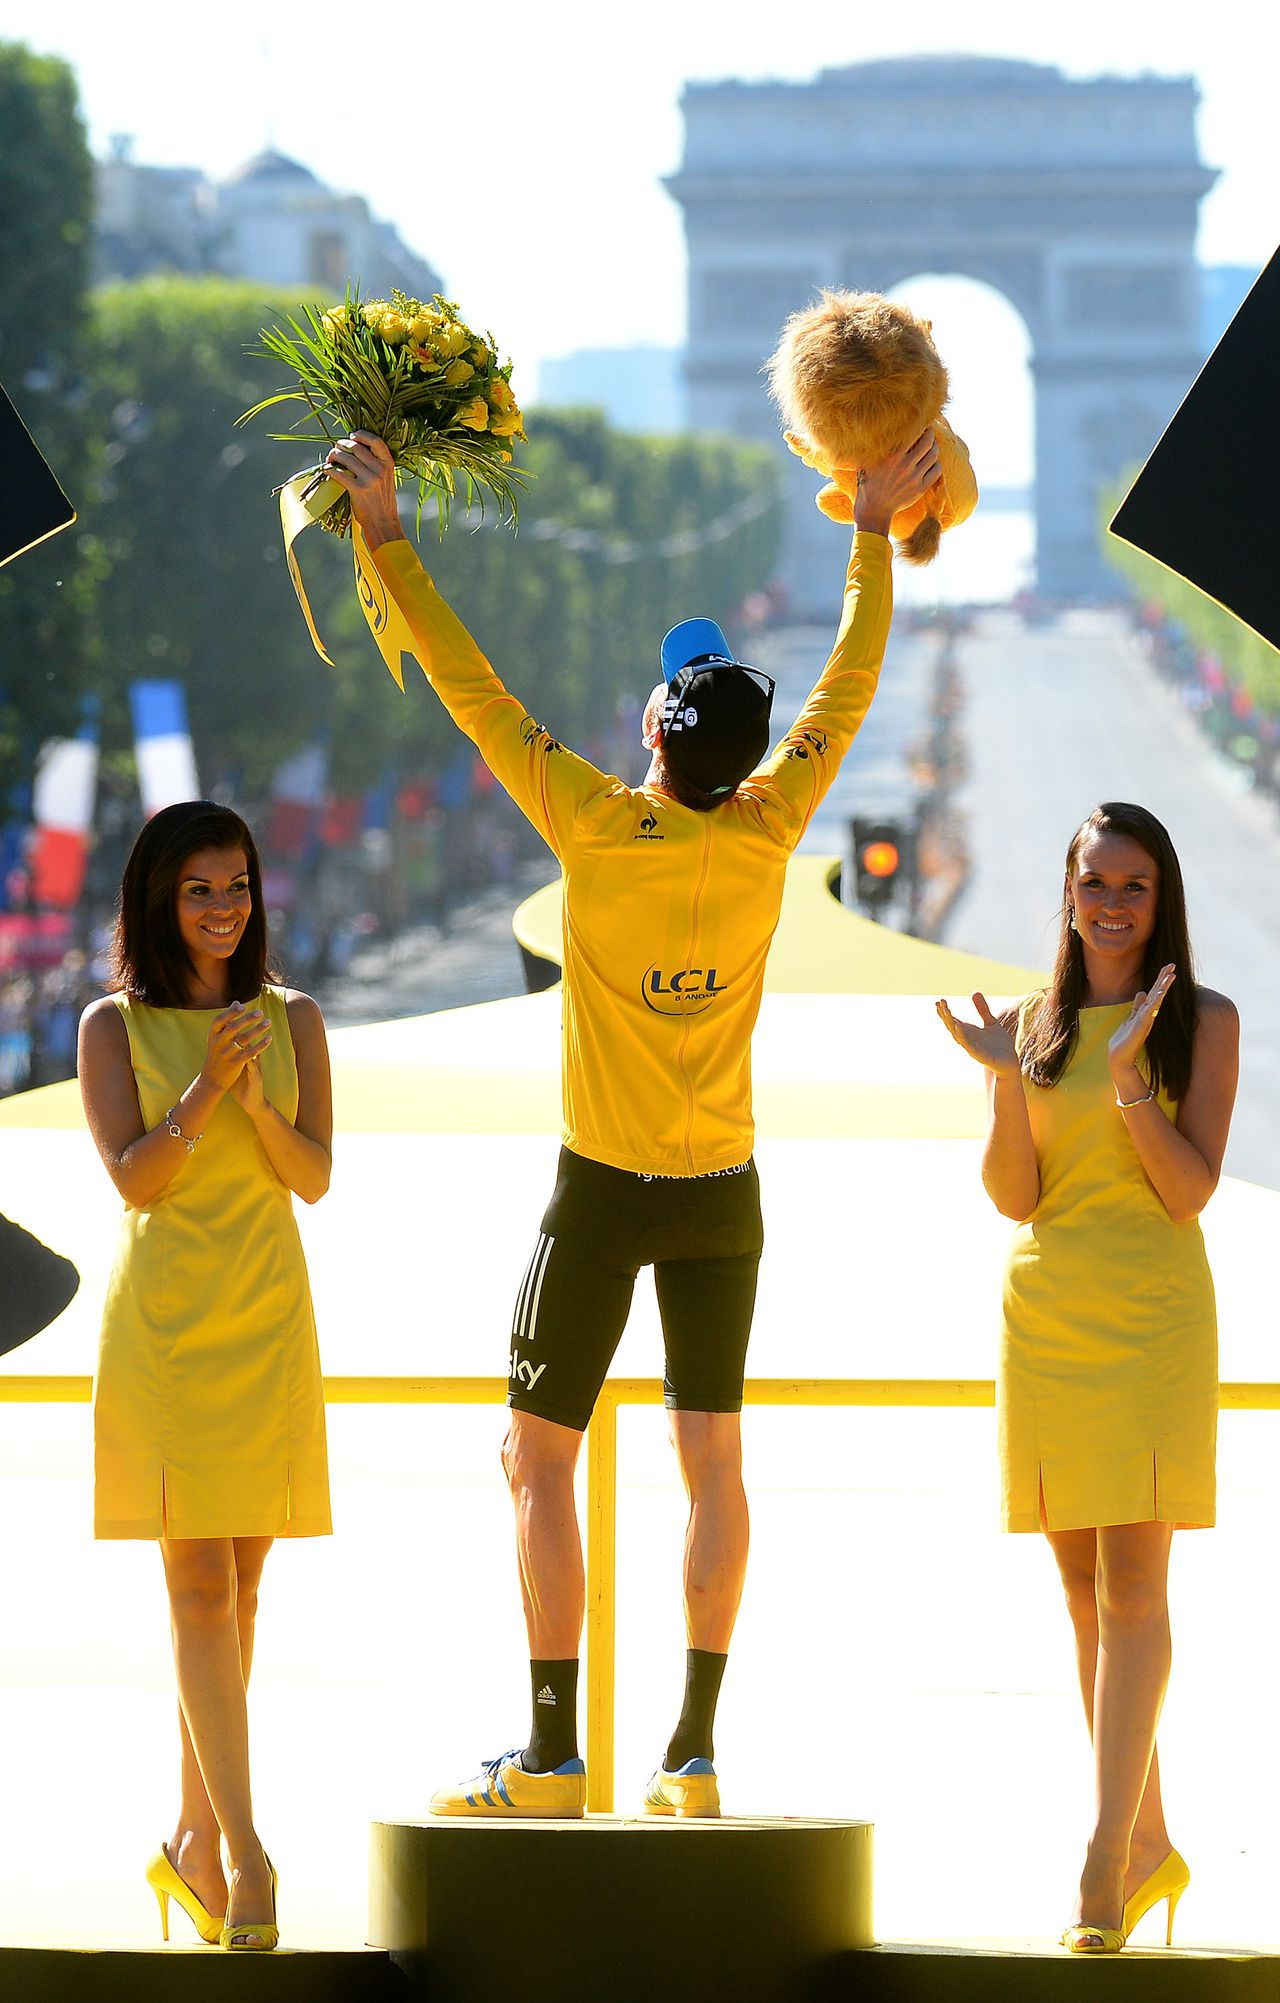 Bradley Wiggins, winner of the 2012 Tour de France cycling race celebrates on the podium of the the Tour de France cycling race in Paris, France, Sunday July 22, 2012. (AP Photo/Jerome Prevost, Pool)